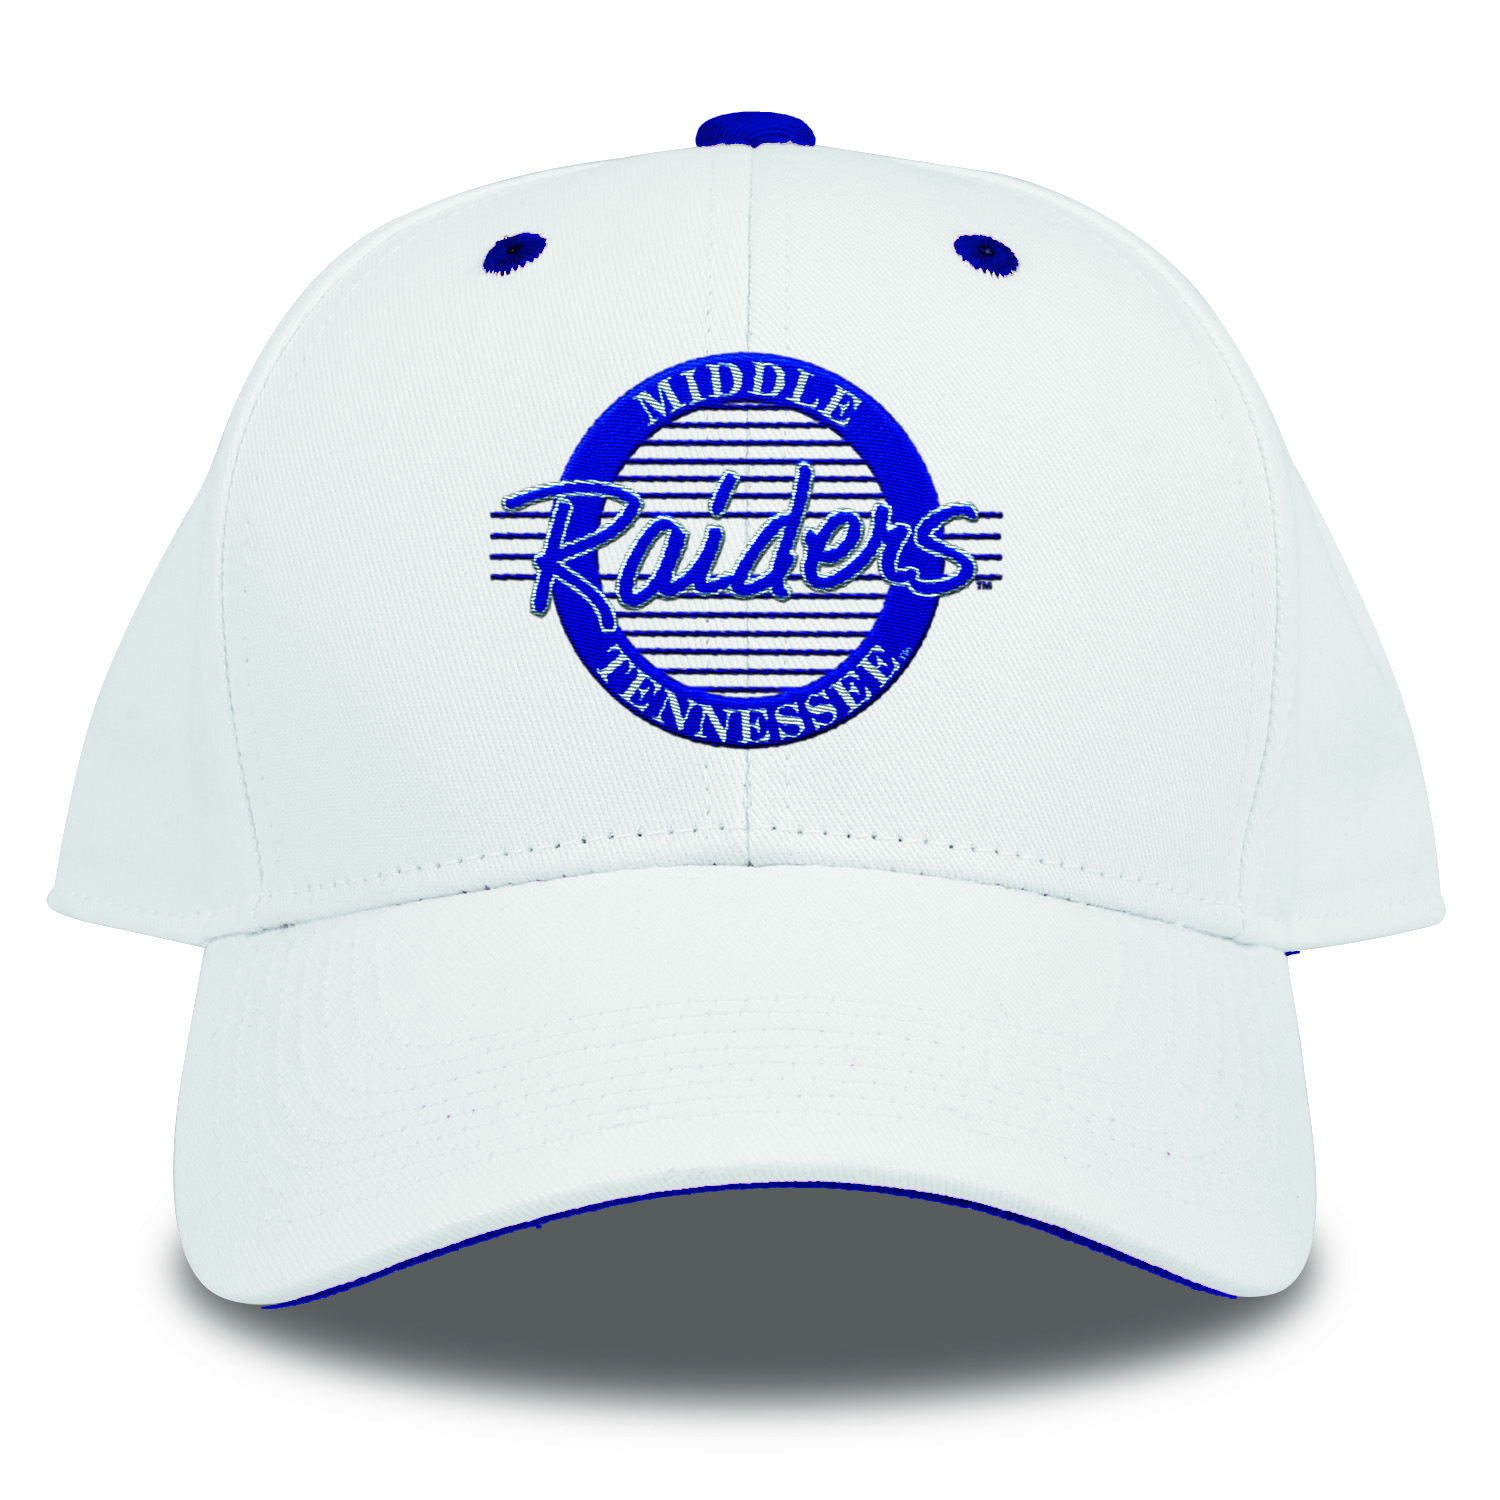 Middle Tennessee Raiders Twill Snapback